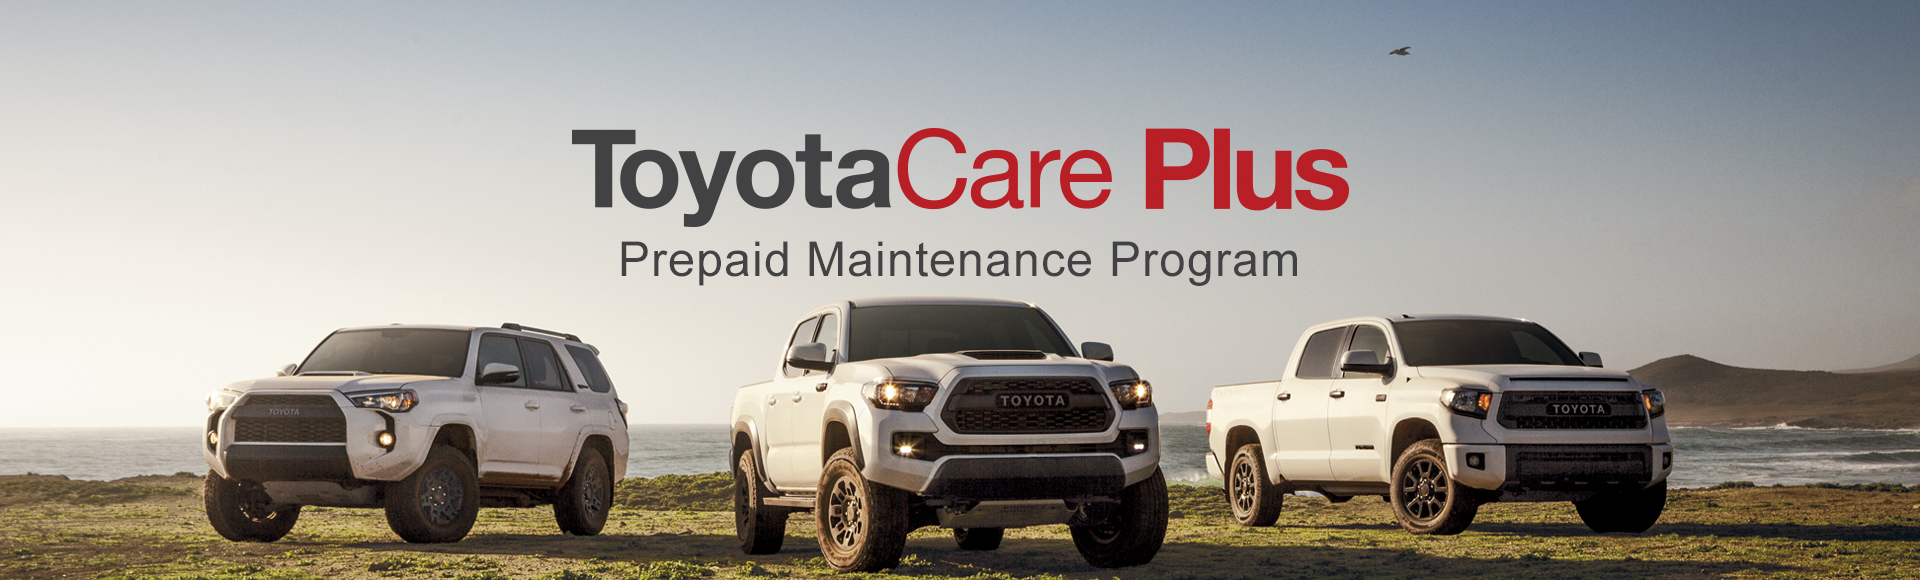 ToyotaCare Plus Prepaid Maintenance Program